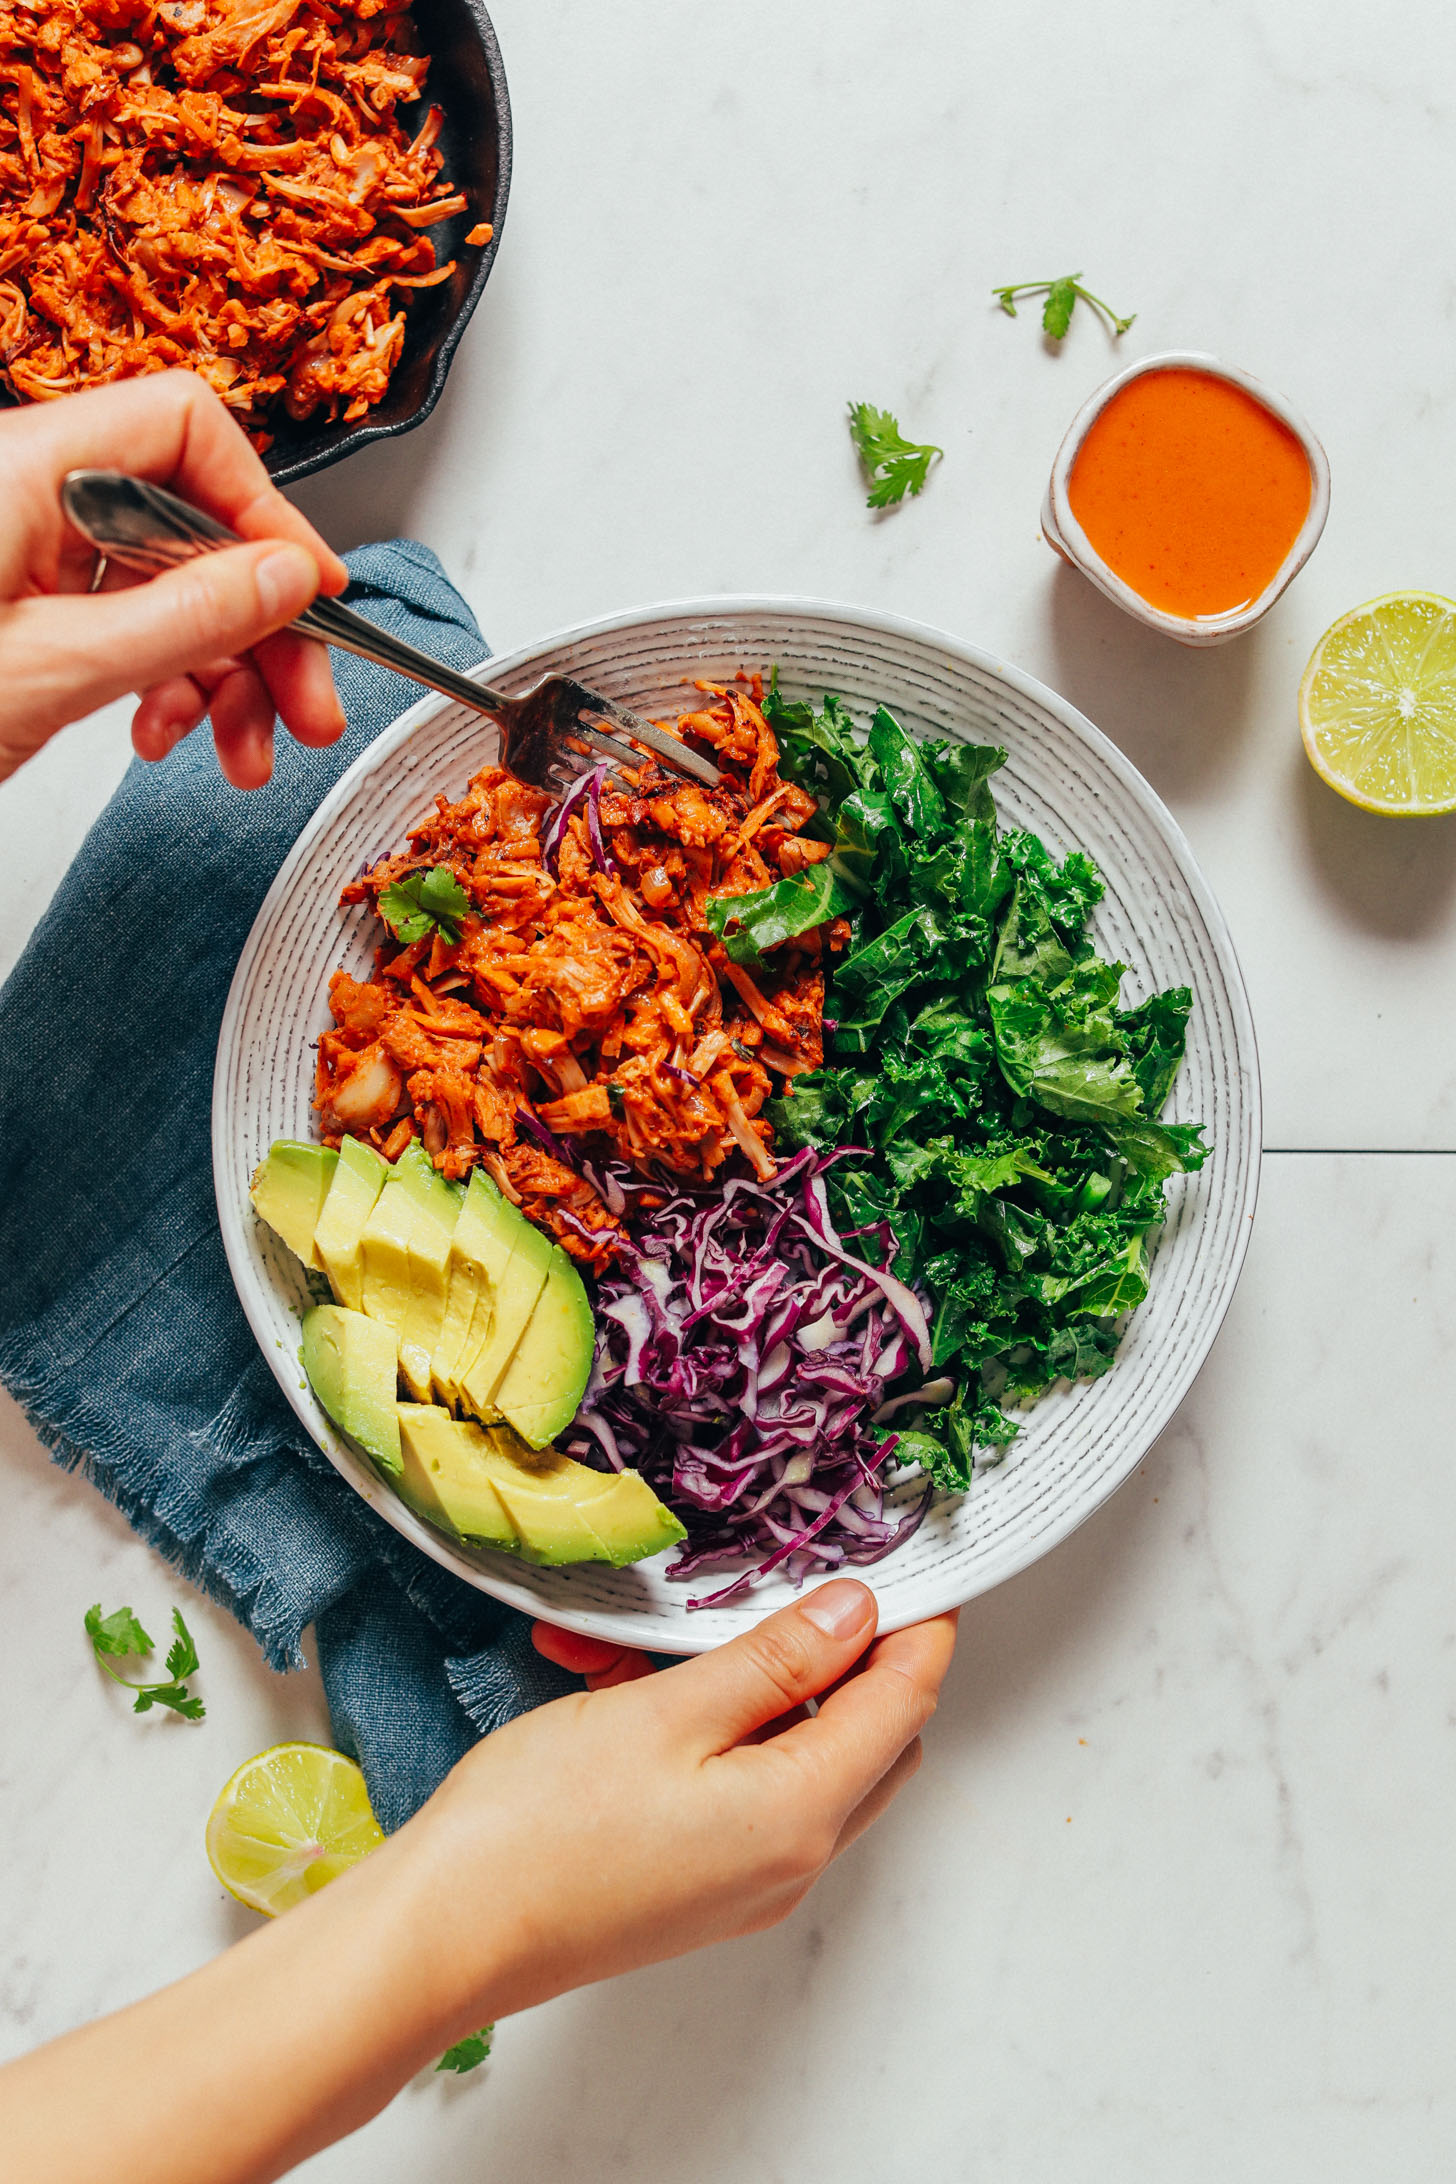 Using a fork to pick up a bite of Smoky Marinated Jackfruit from a bowl with fresh vegetables